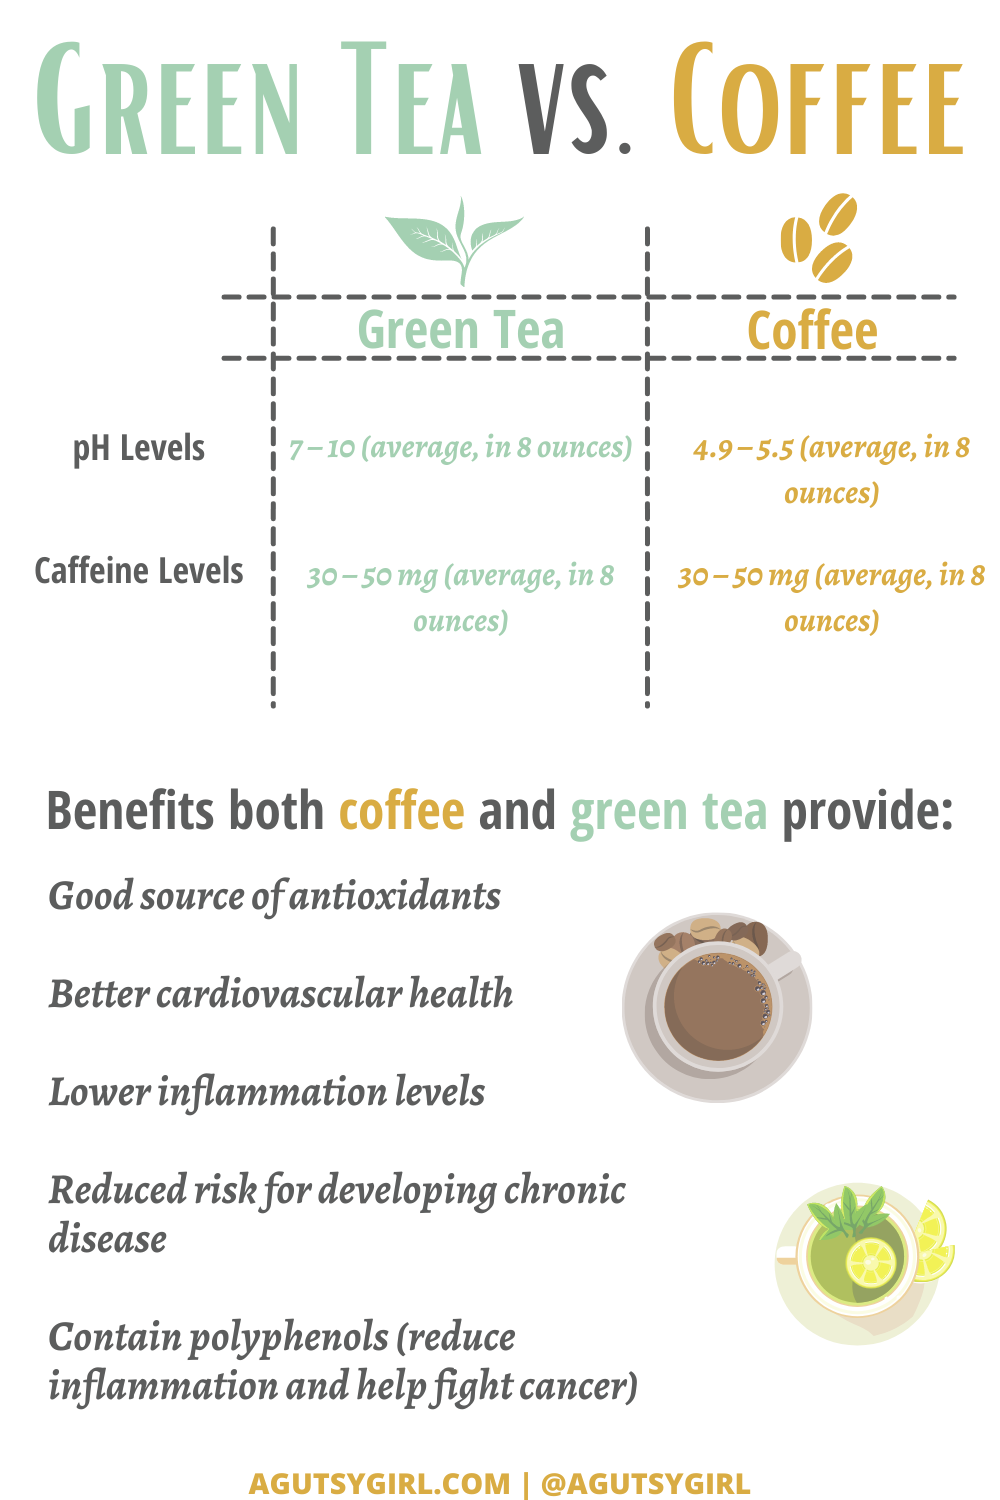 Green Tea vs Coffee chart agutsygirl.com #guthealth #greenteavscoffee #greentea